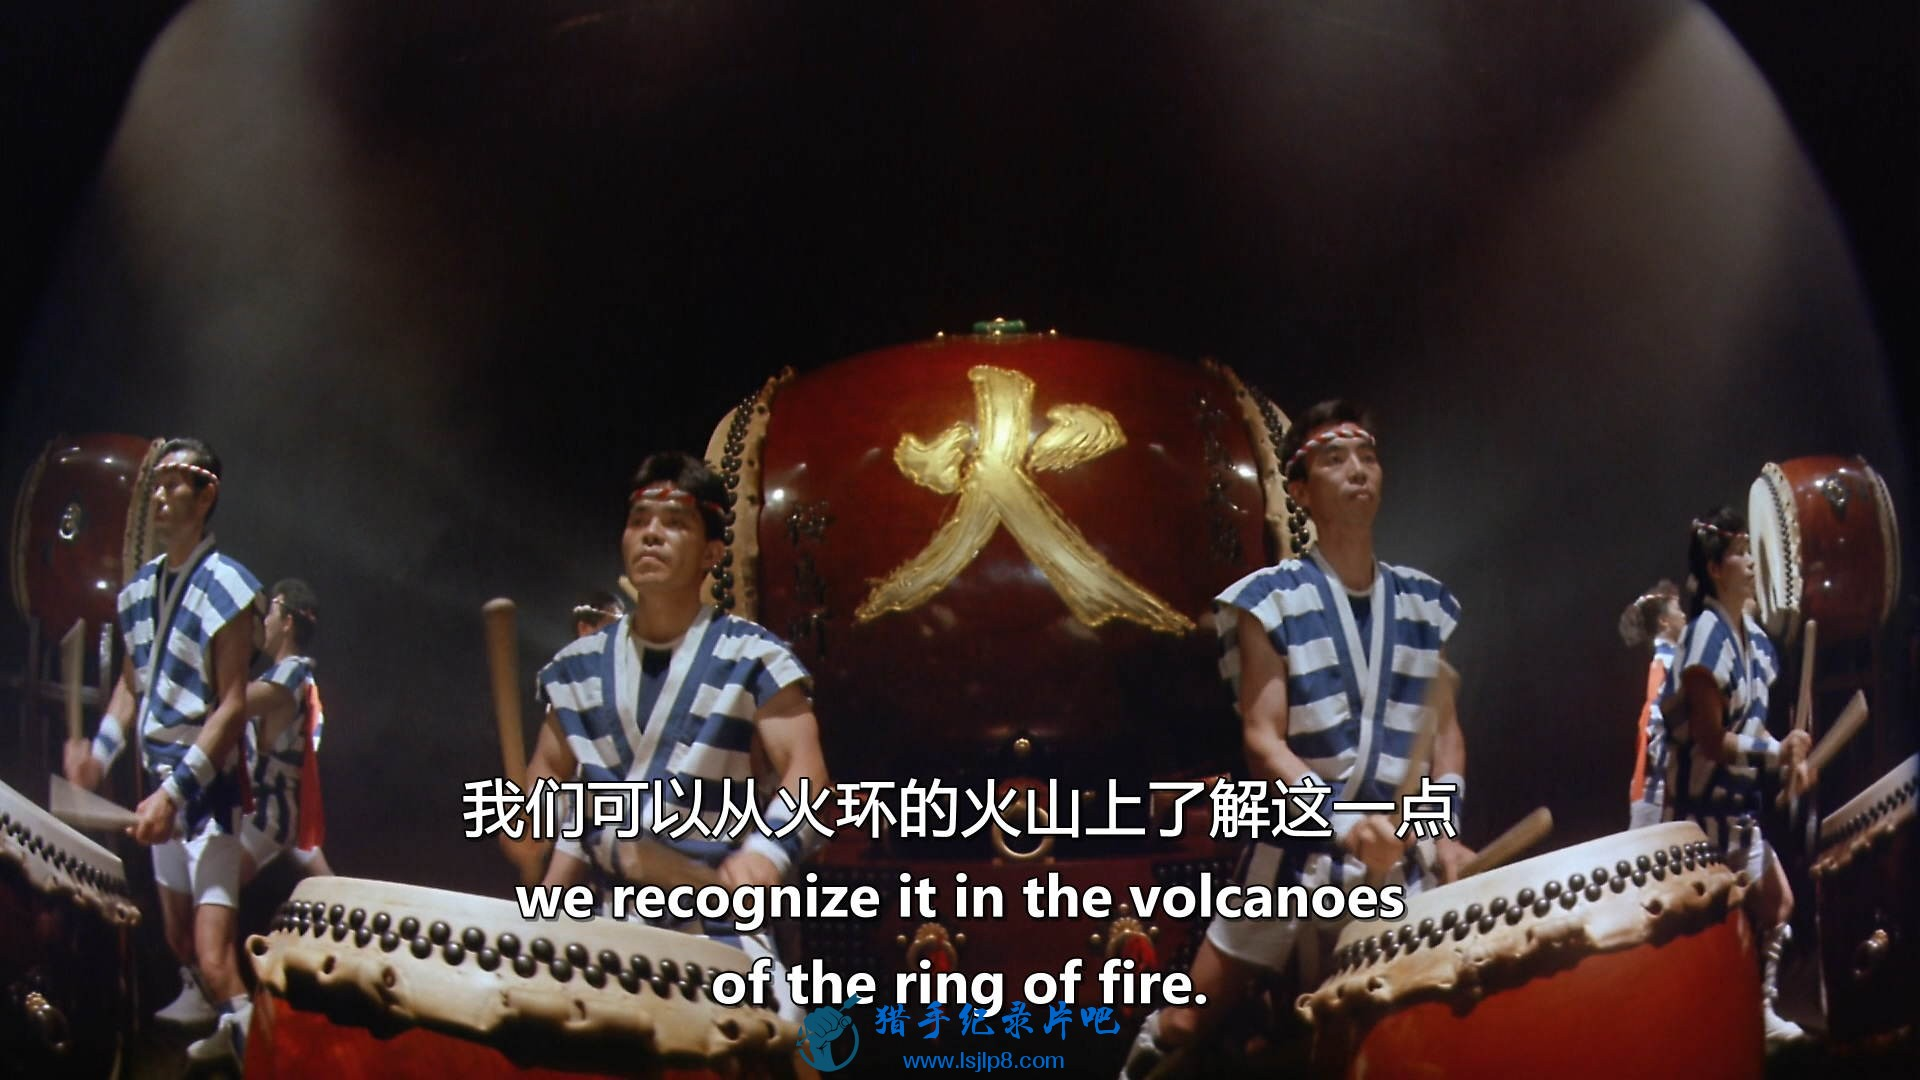 IMAX.Ring.of.Fire.1991.BluRay.1080p.DTS.x264-CHD.mkv_20200718_110837.380_看图王.jpg